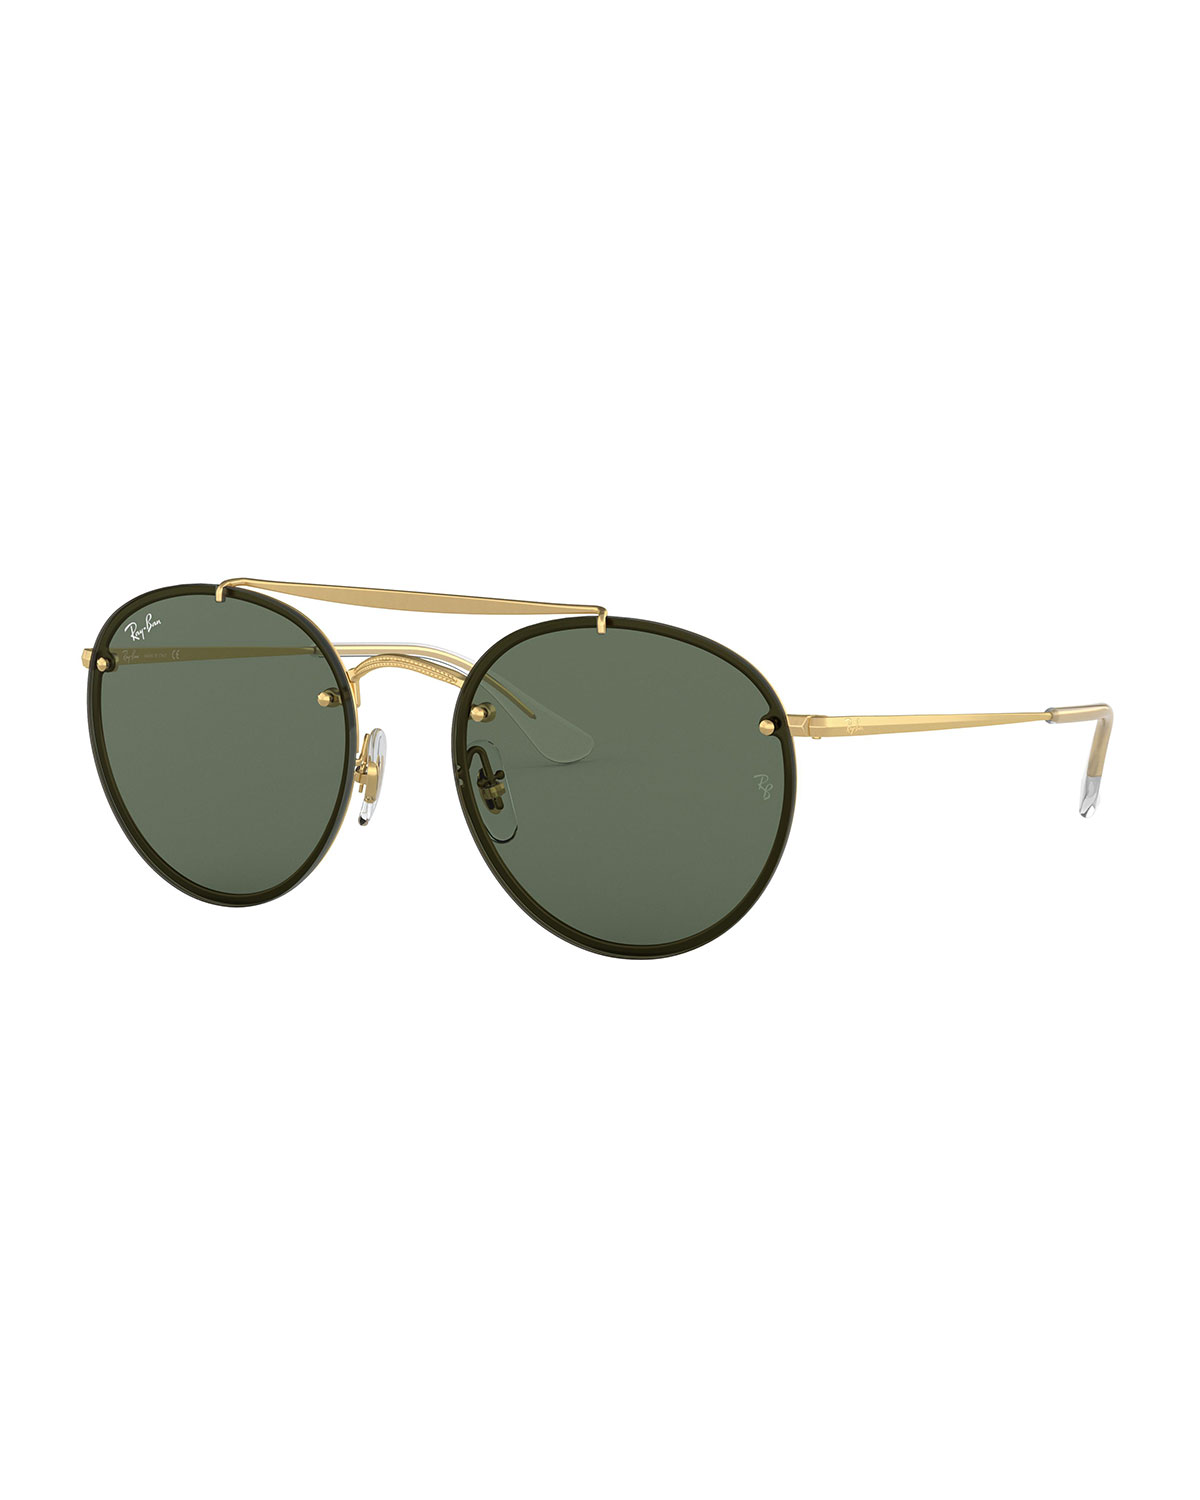 0c97411bfb06c Ray-Ban Men s Blaze Round Lens-Over-Frame Metal Sunglasses